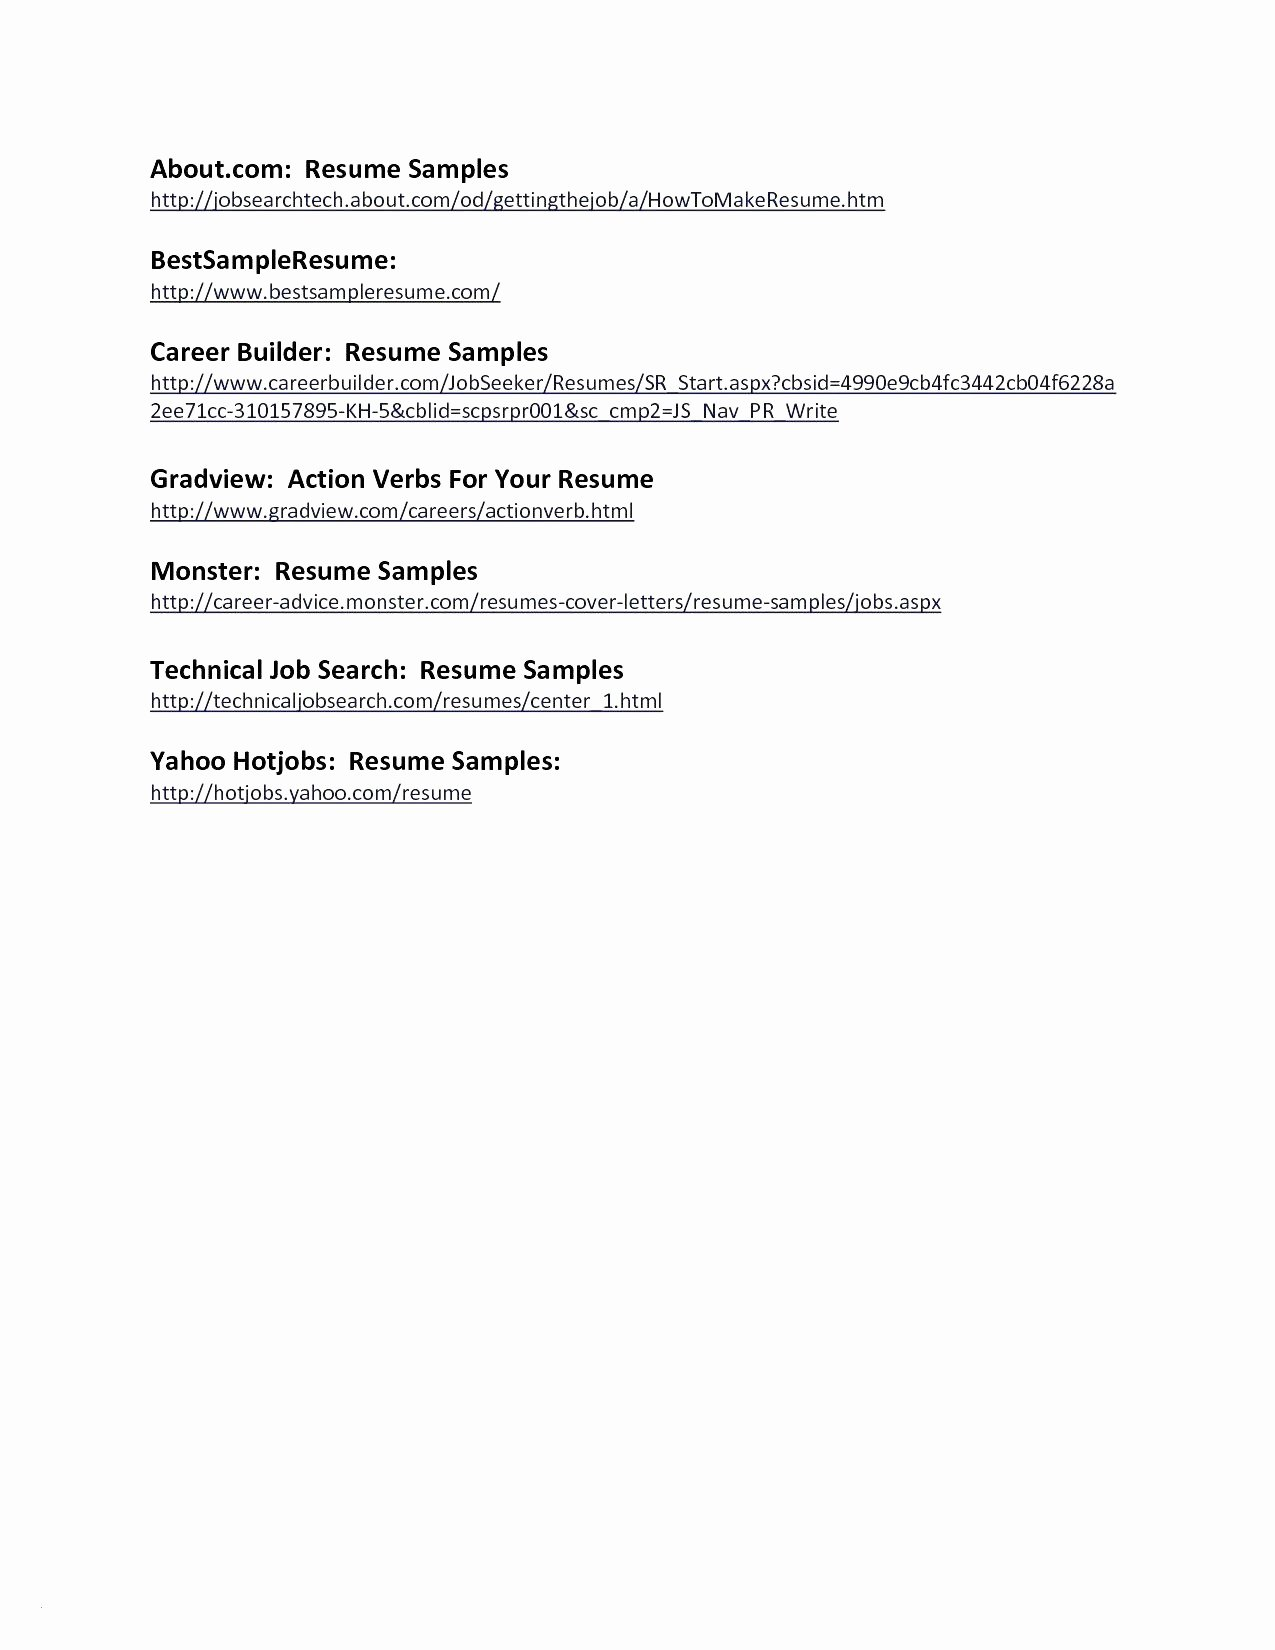 Sample Resume for Internship In Accounting